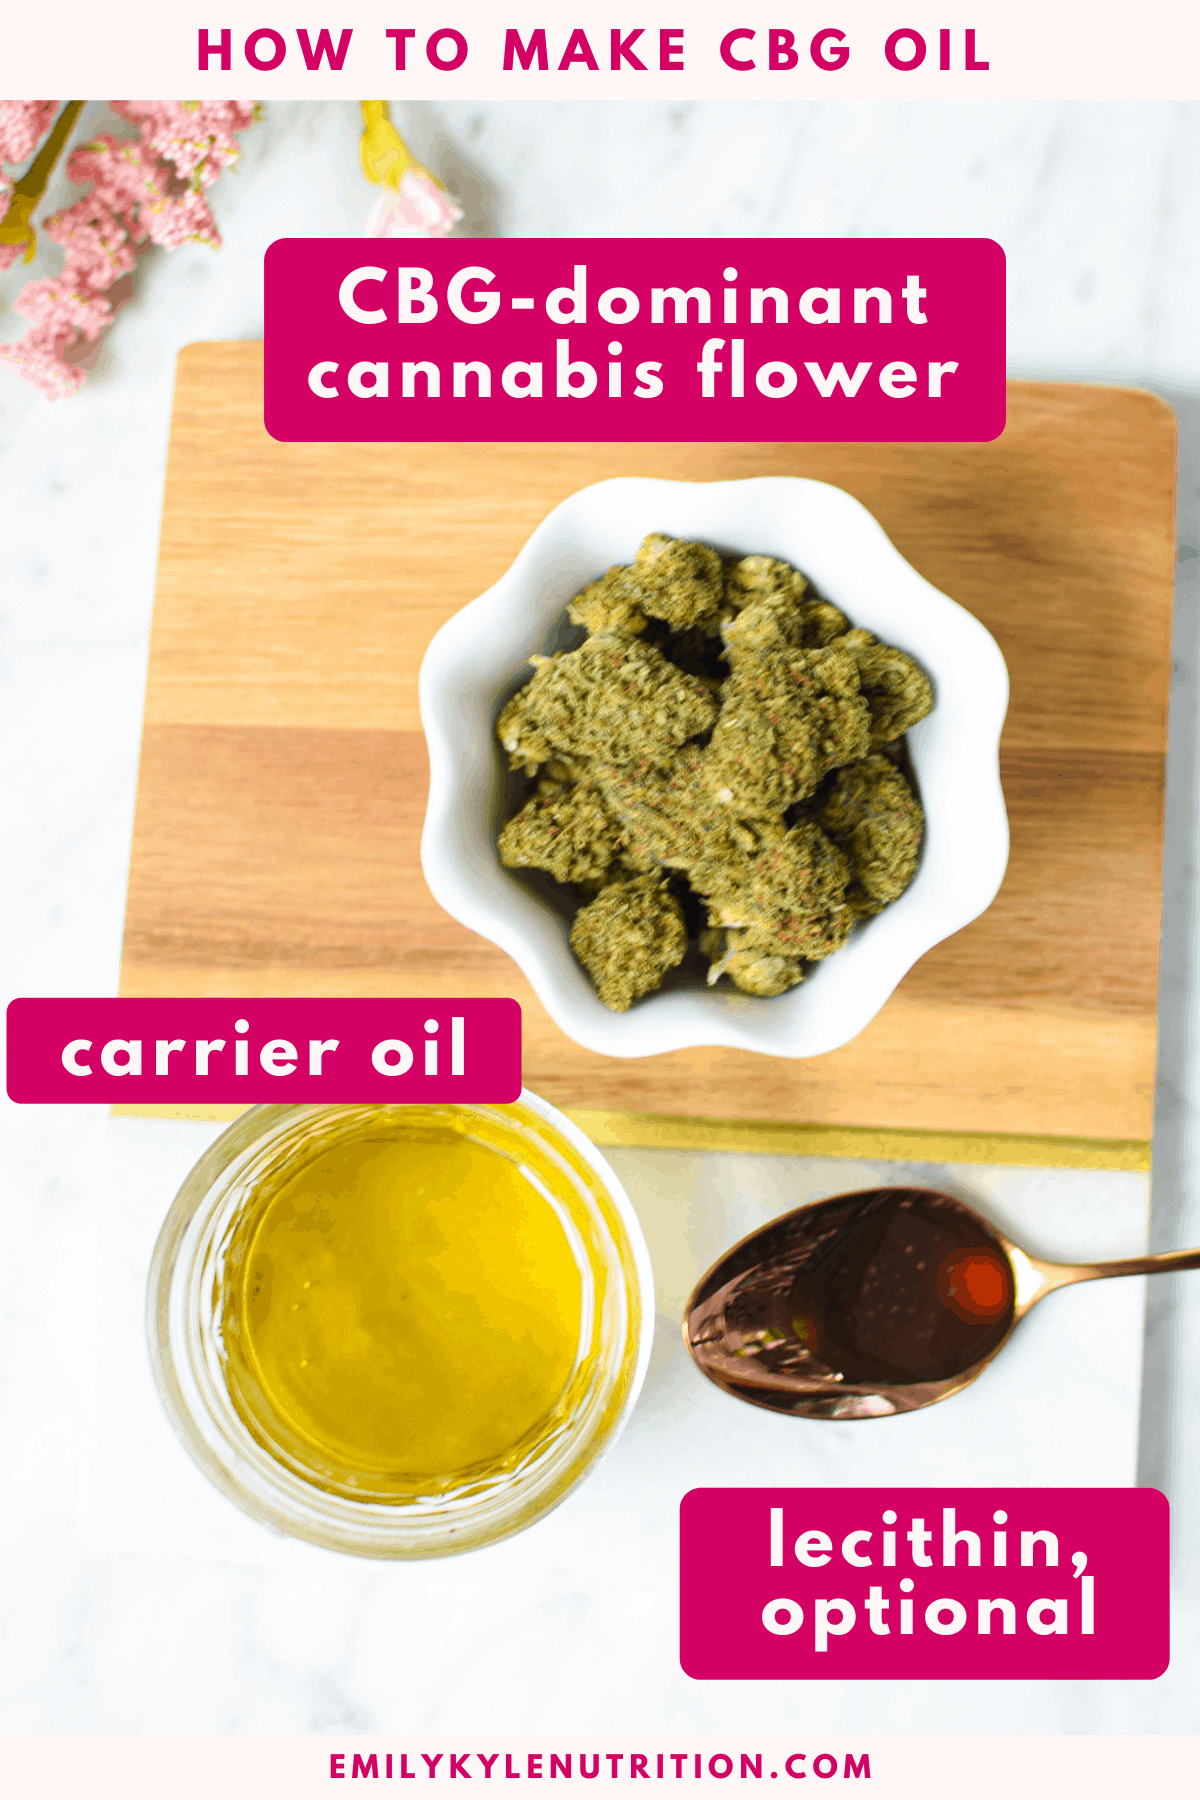 How To Make CBG Oil Ingredients collage including cbg flower, a carrier oil, and optional sunflower lecithin